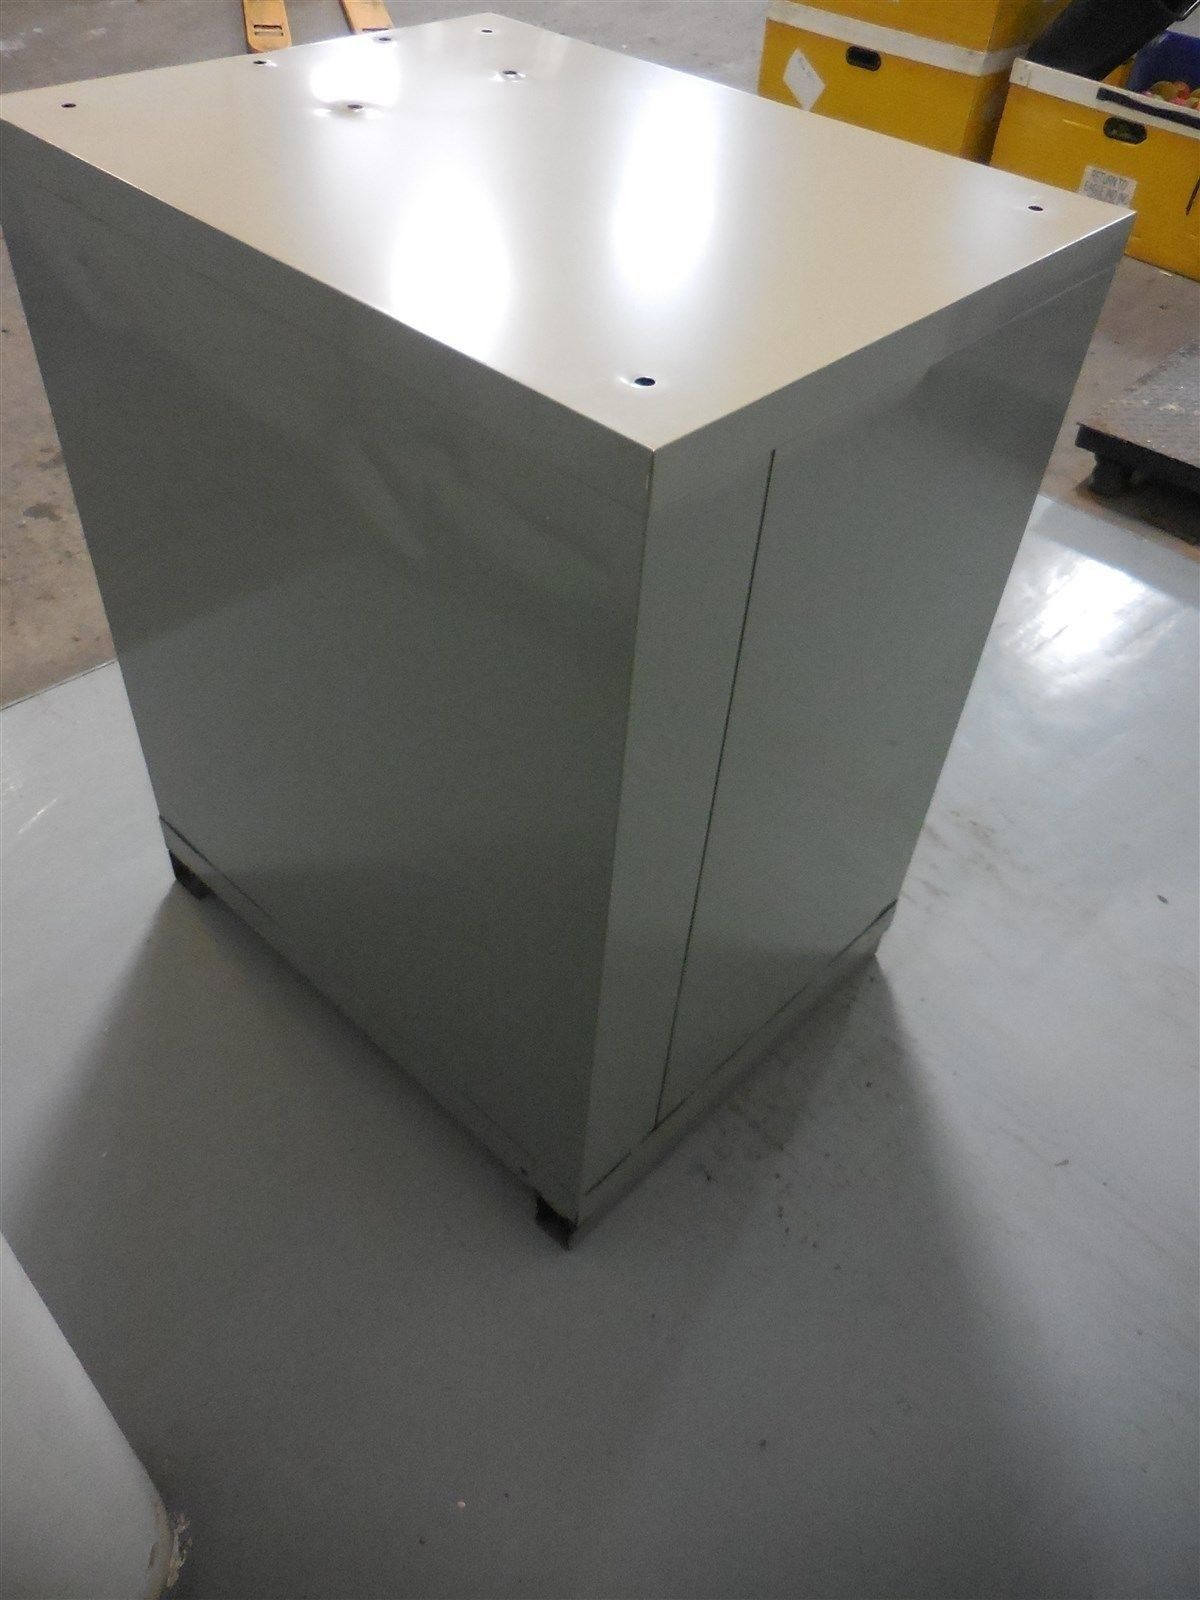 Used Lista 5 Drawer Cabinet 36 Inches Tall 22 Inches Wide